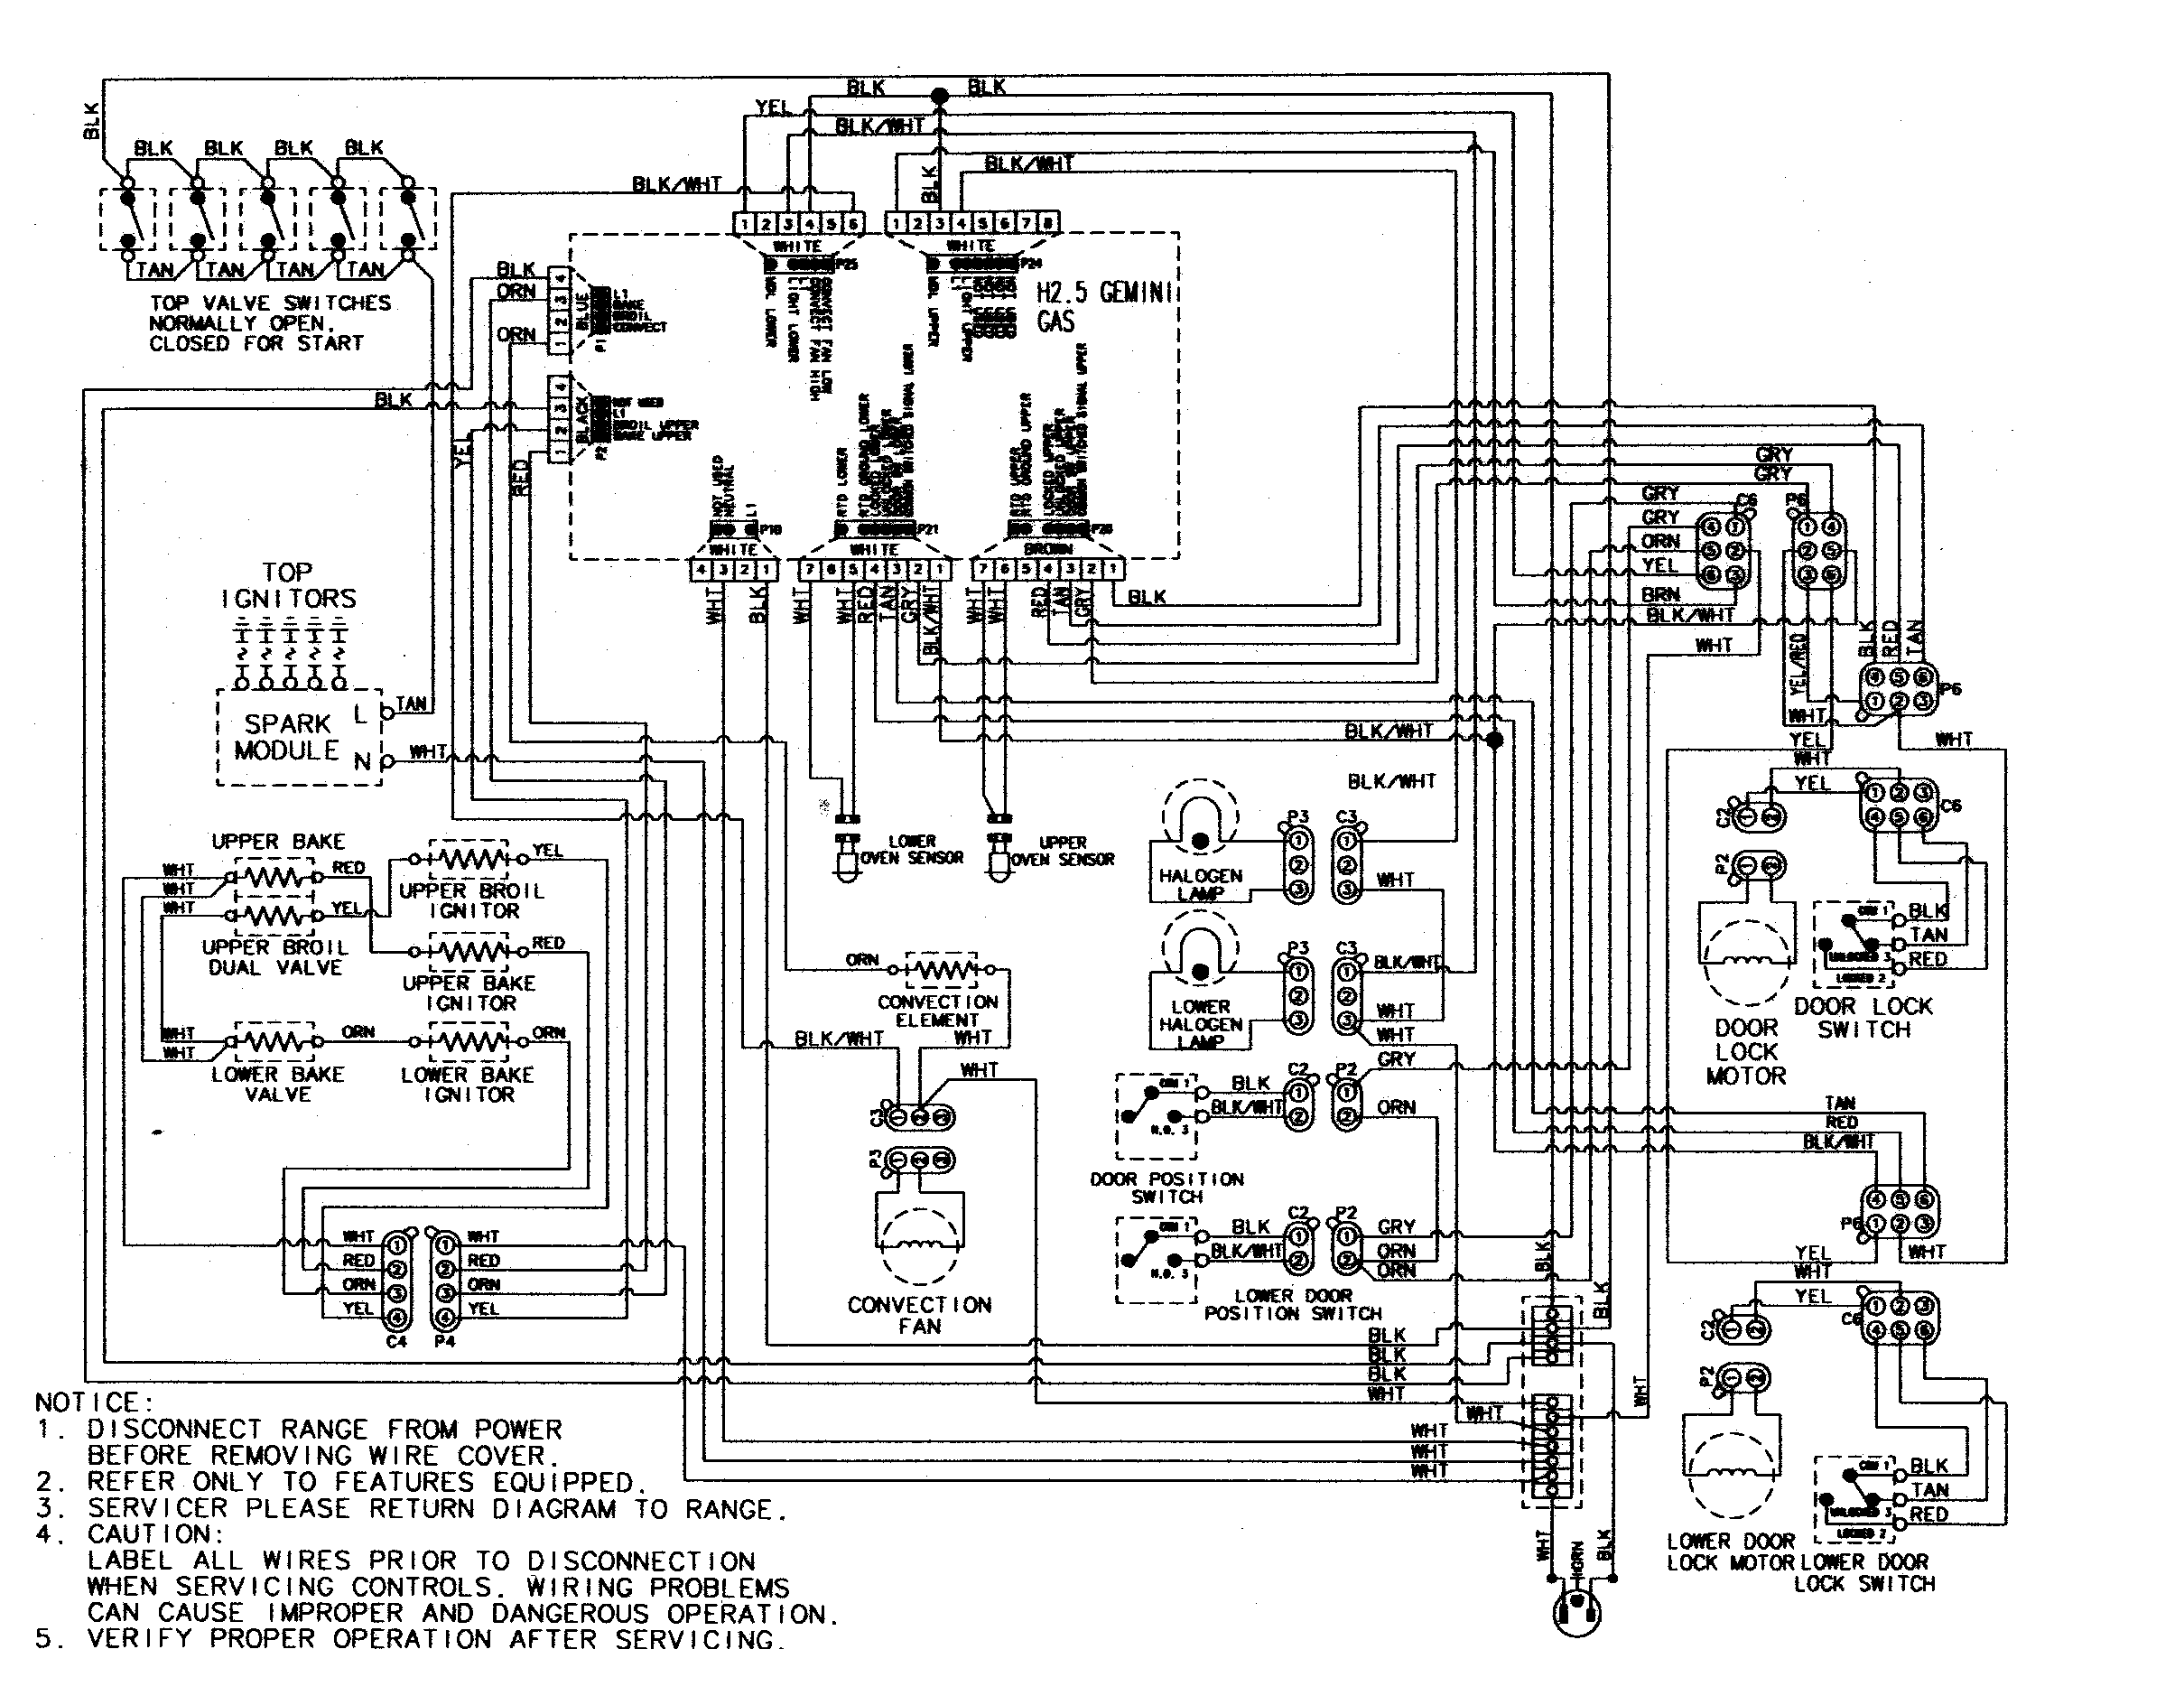 Wiring Diagram Maytag Range Schematics Diagrams Performa Dryer Belt Stove Element Manual Electrical